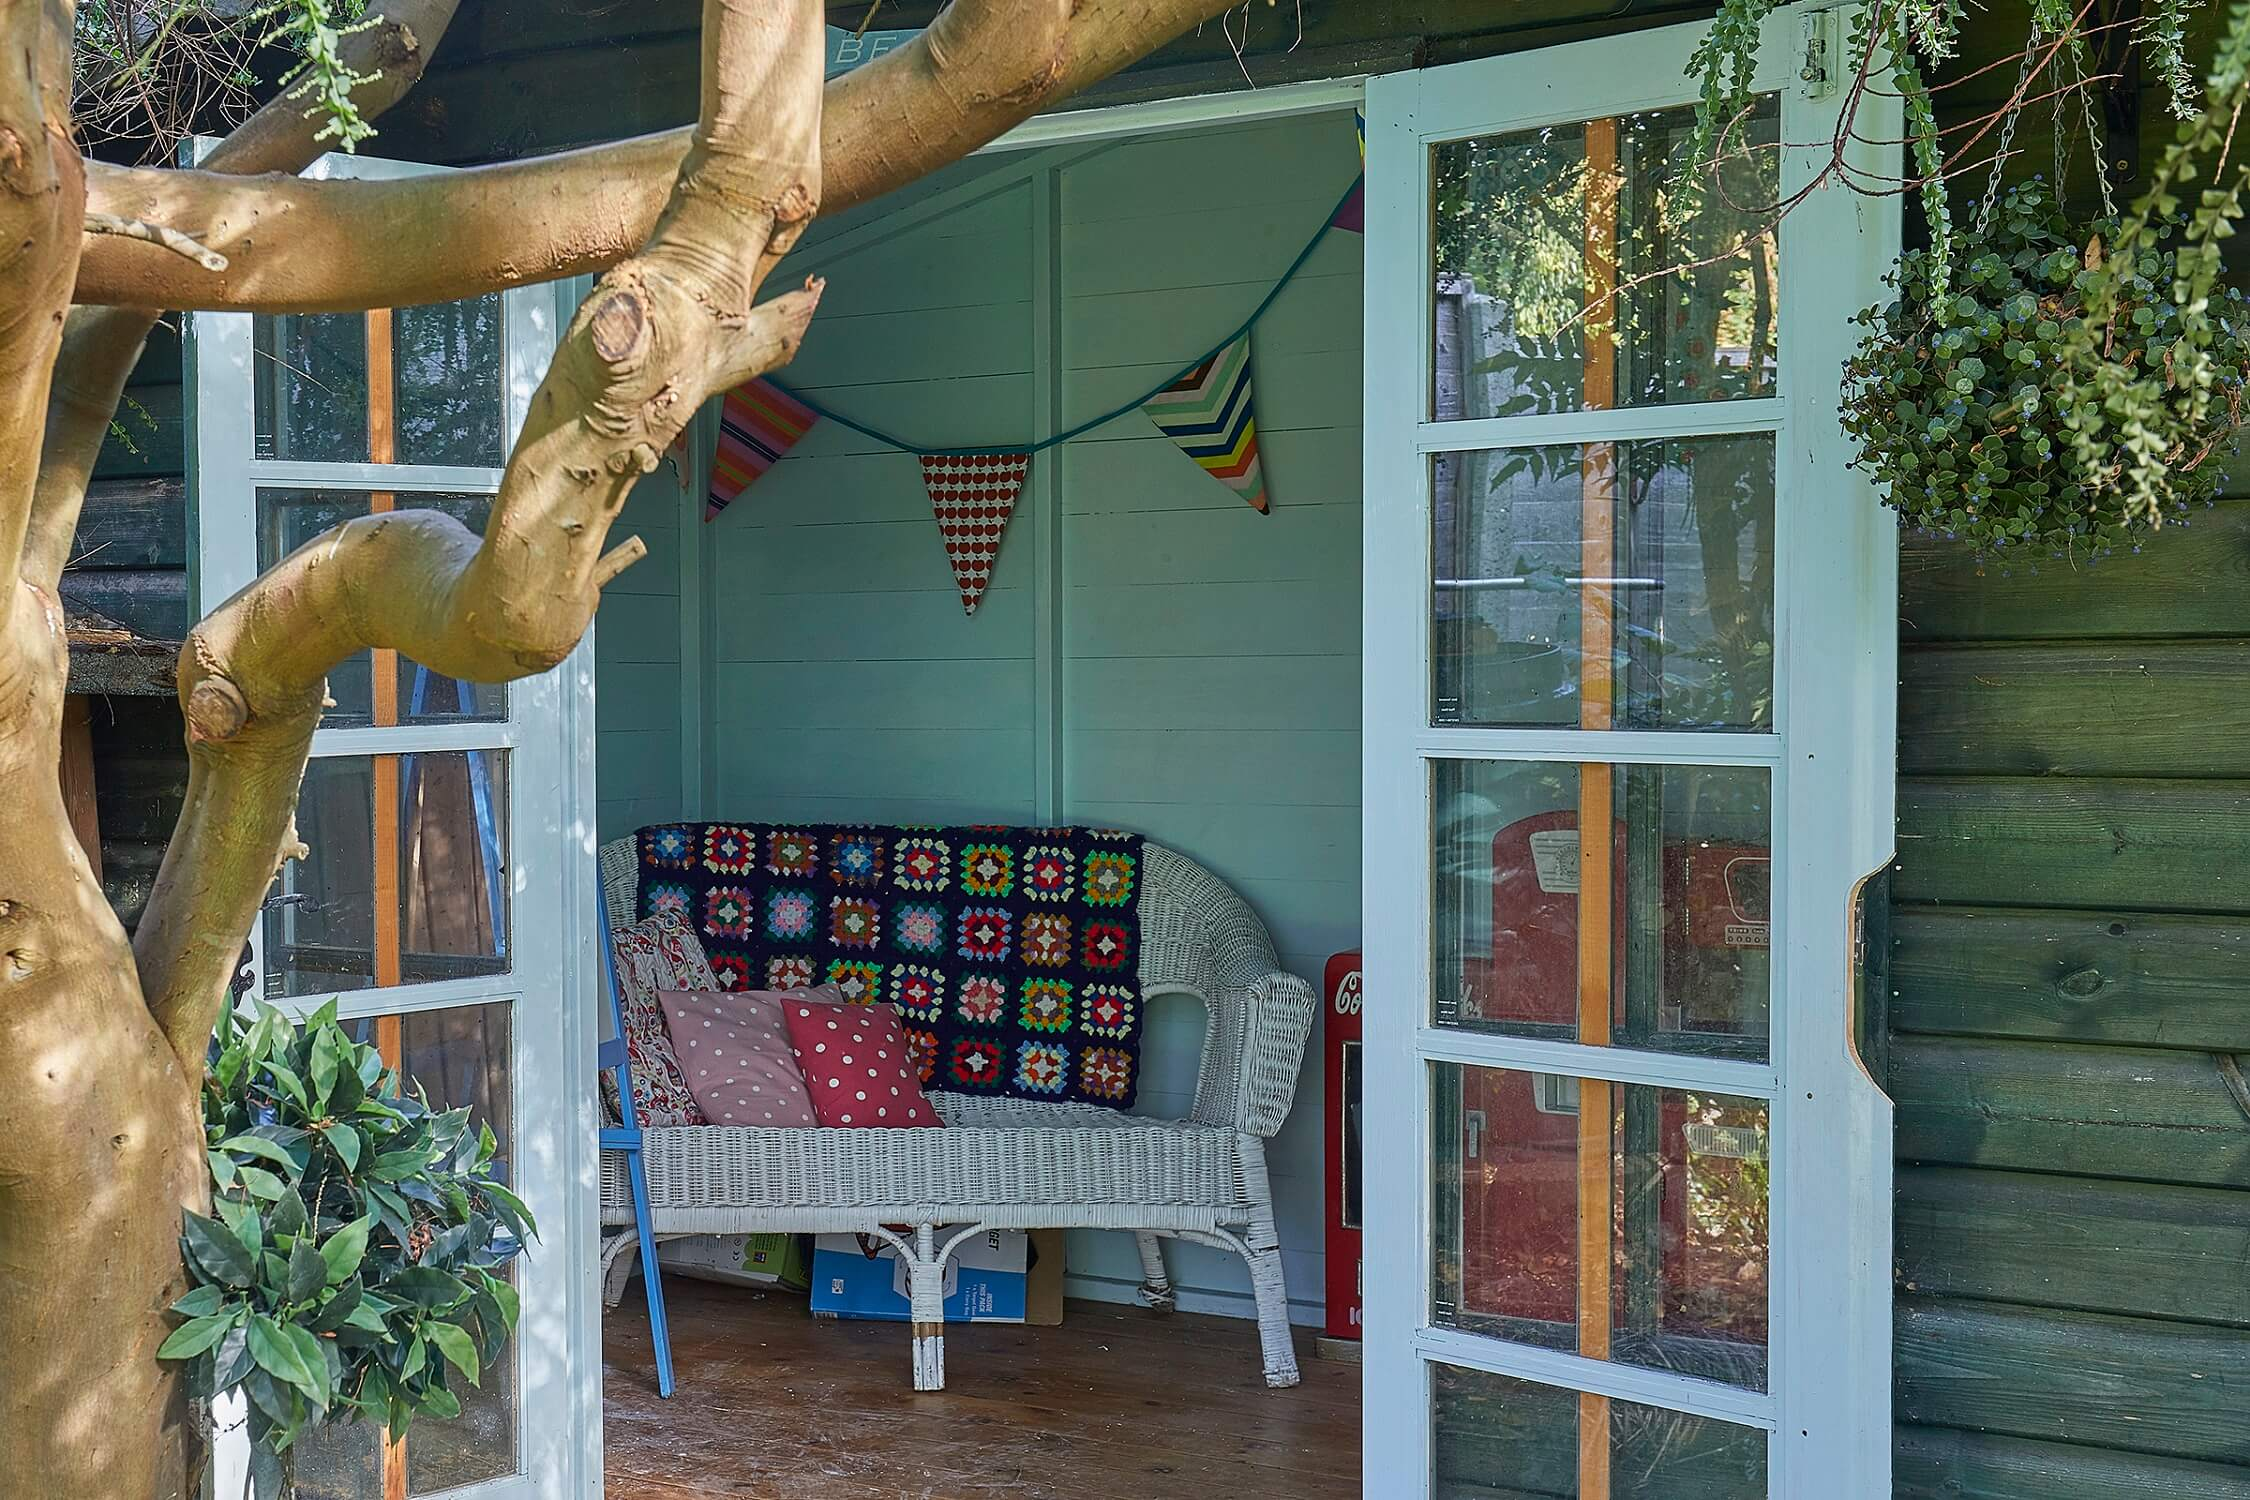 Hollies House - Summer house at the end of the garden adorned with children's toys